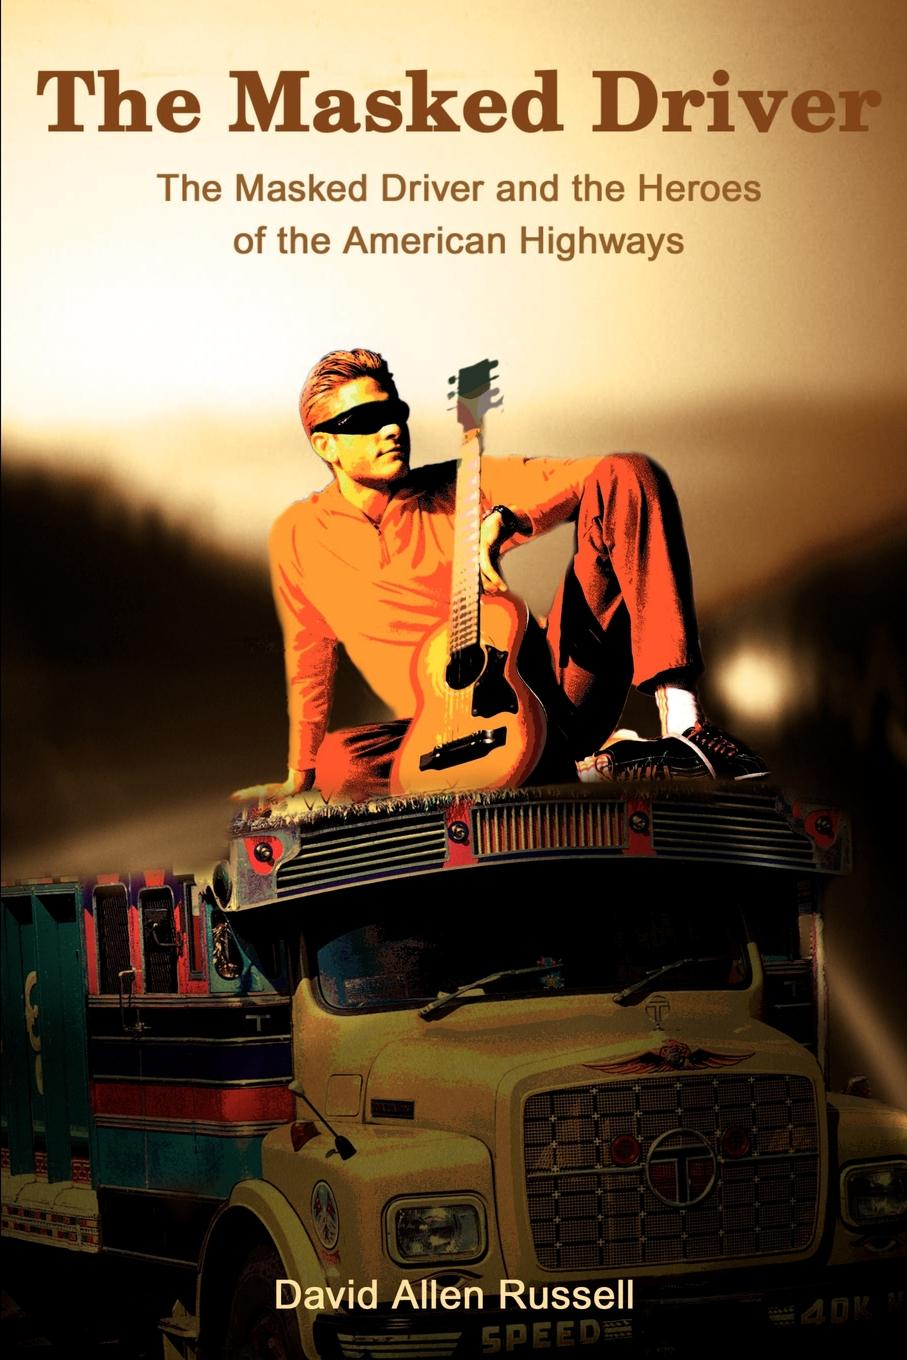 David Allen Russell The Masked Driver. Driver and the Heroes of American Highways